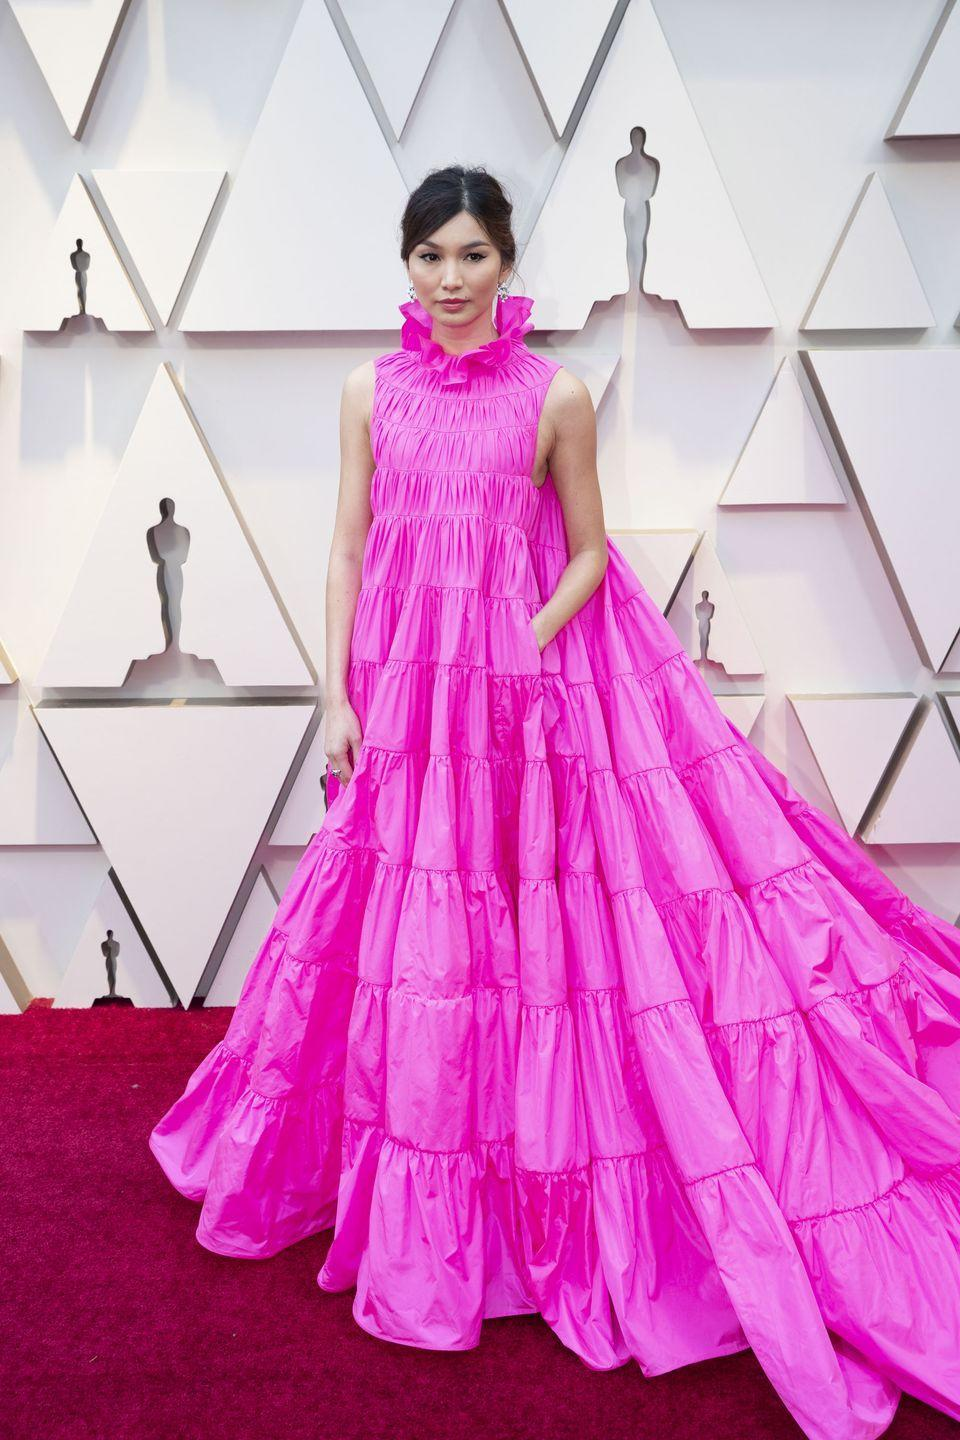 "<p>The <em>Crazy Rich Asians</em> star wore a voluminous Valentino dress with a high collar to the red carpet and landed on the <a href=""https://www.cosmopolitan.com/style-beauty/fashion/a26363626/best-worst-dressed-oscars-2019/"" rel=""nofollow noopener"" target=""_blank"" data-ylk=""slk:best-dressed list"" class=""link rapid-noclick-resp"">best-dressed list</a>. As a bonus, the frock even had pockets!!! </p>"